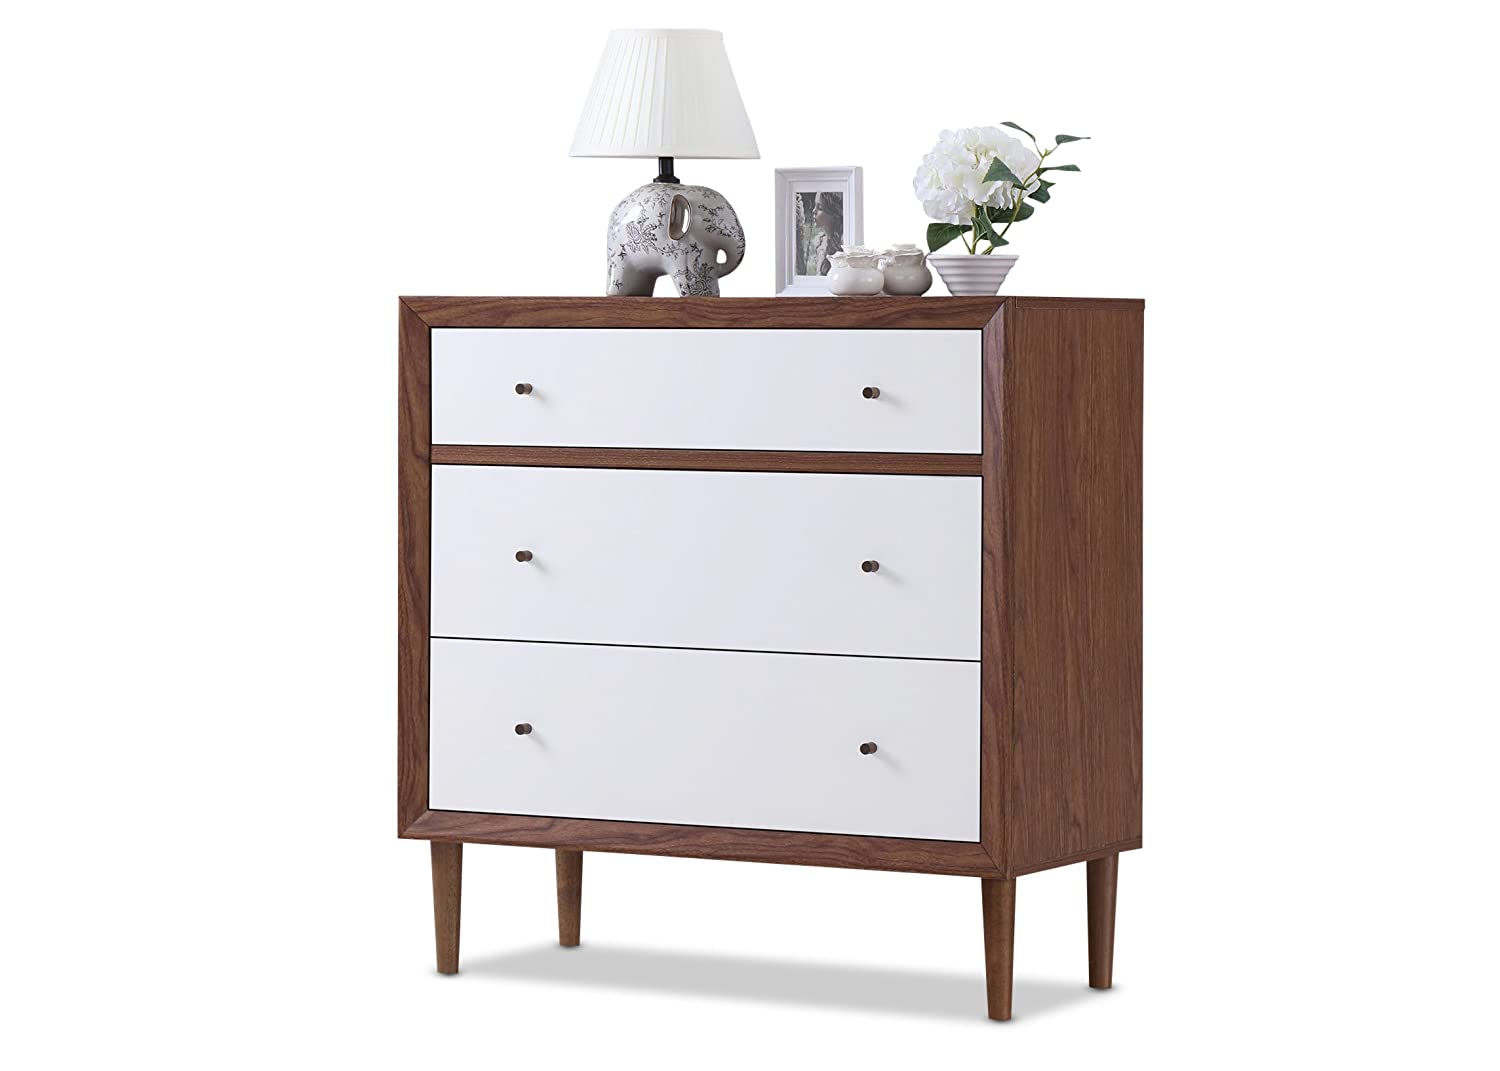 Amazon Com Baxton Furniture Studios Harlow Mid Century Wood 3 Drawer Chest Medium White And Walnut Kitchen Dining